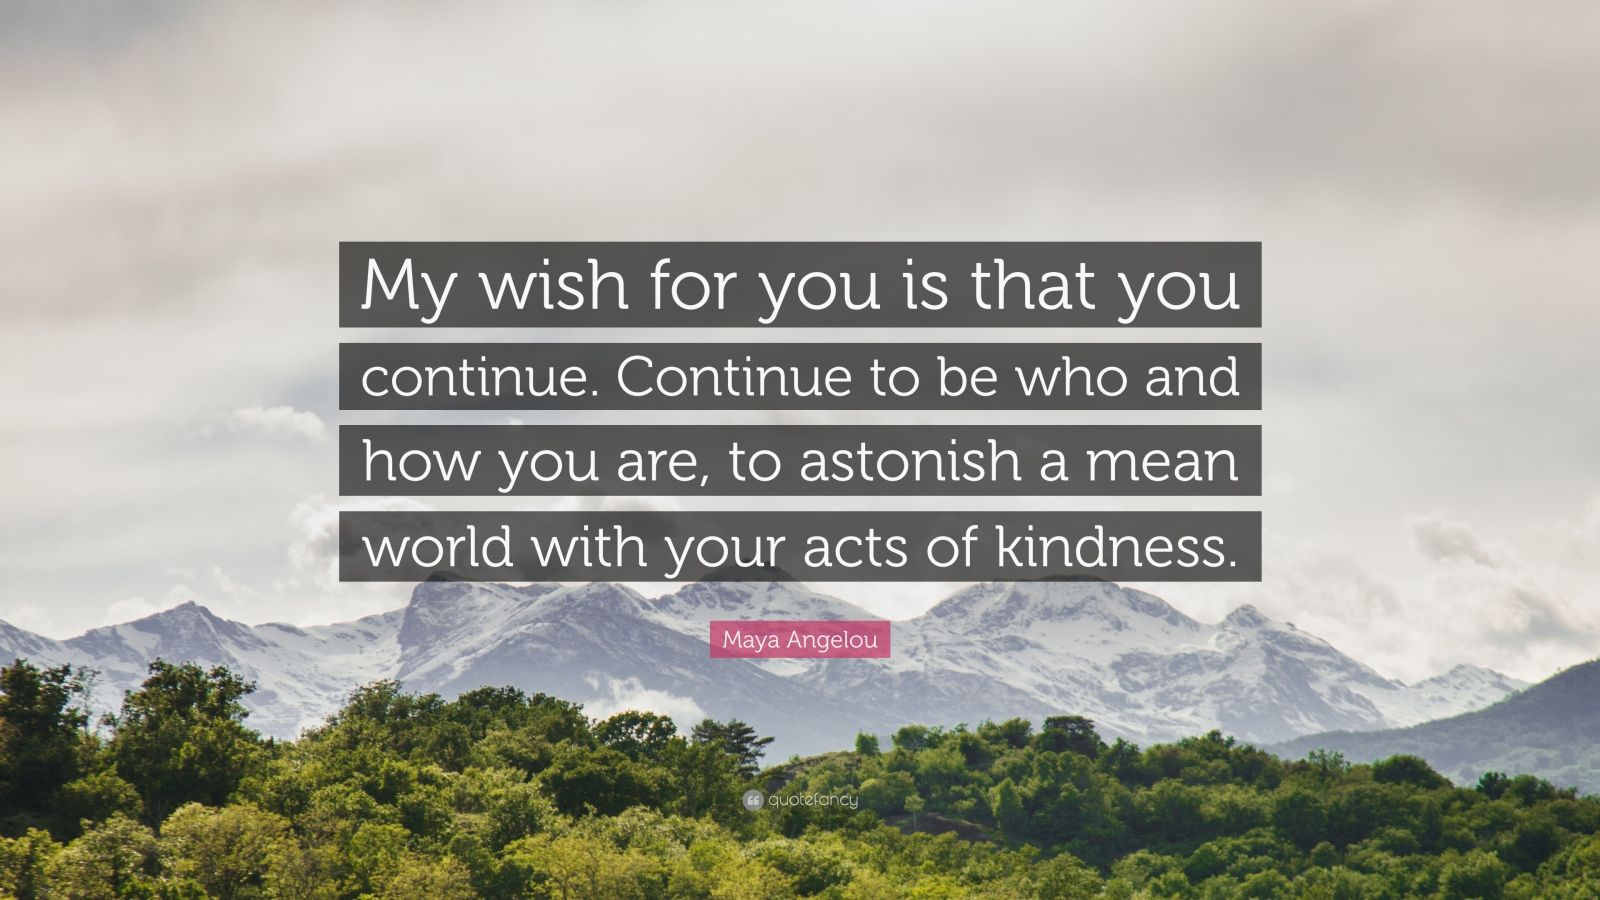 """Maya Angelou Quote: """"My wish for you is that you continue. Continue to be who and how you are, to astonish a mean world with your acts of kindness."""""""